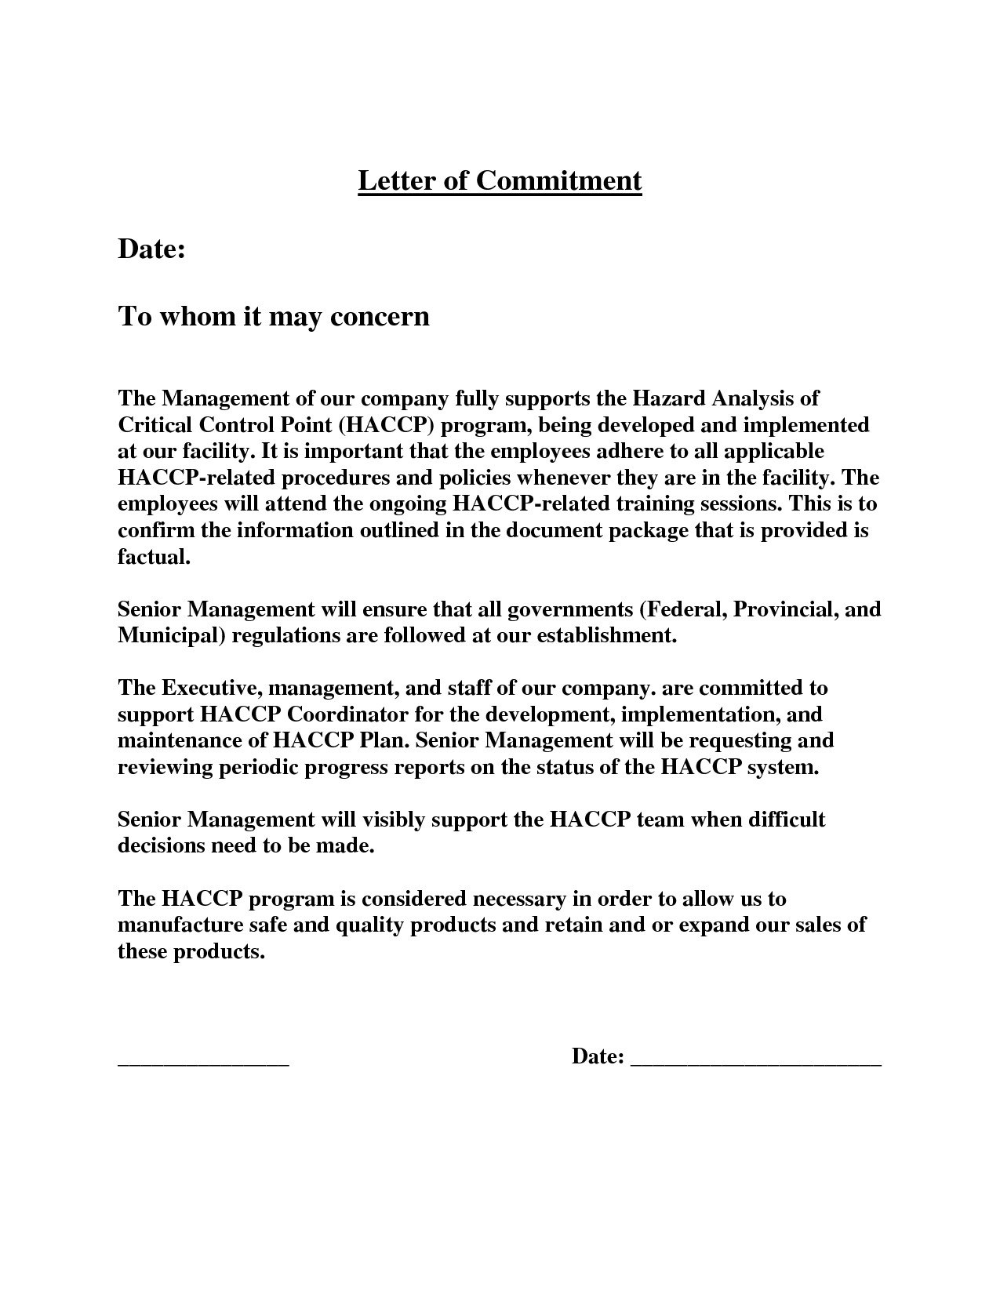 Employment Commitment Letter Budget Spreadsheet With Regard To Letter Of Commitment Template 10 Professional Temp Letter Sample Lettering Budget Spreadsheet